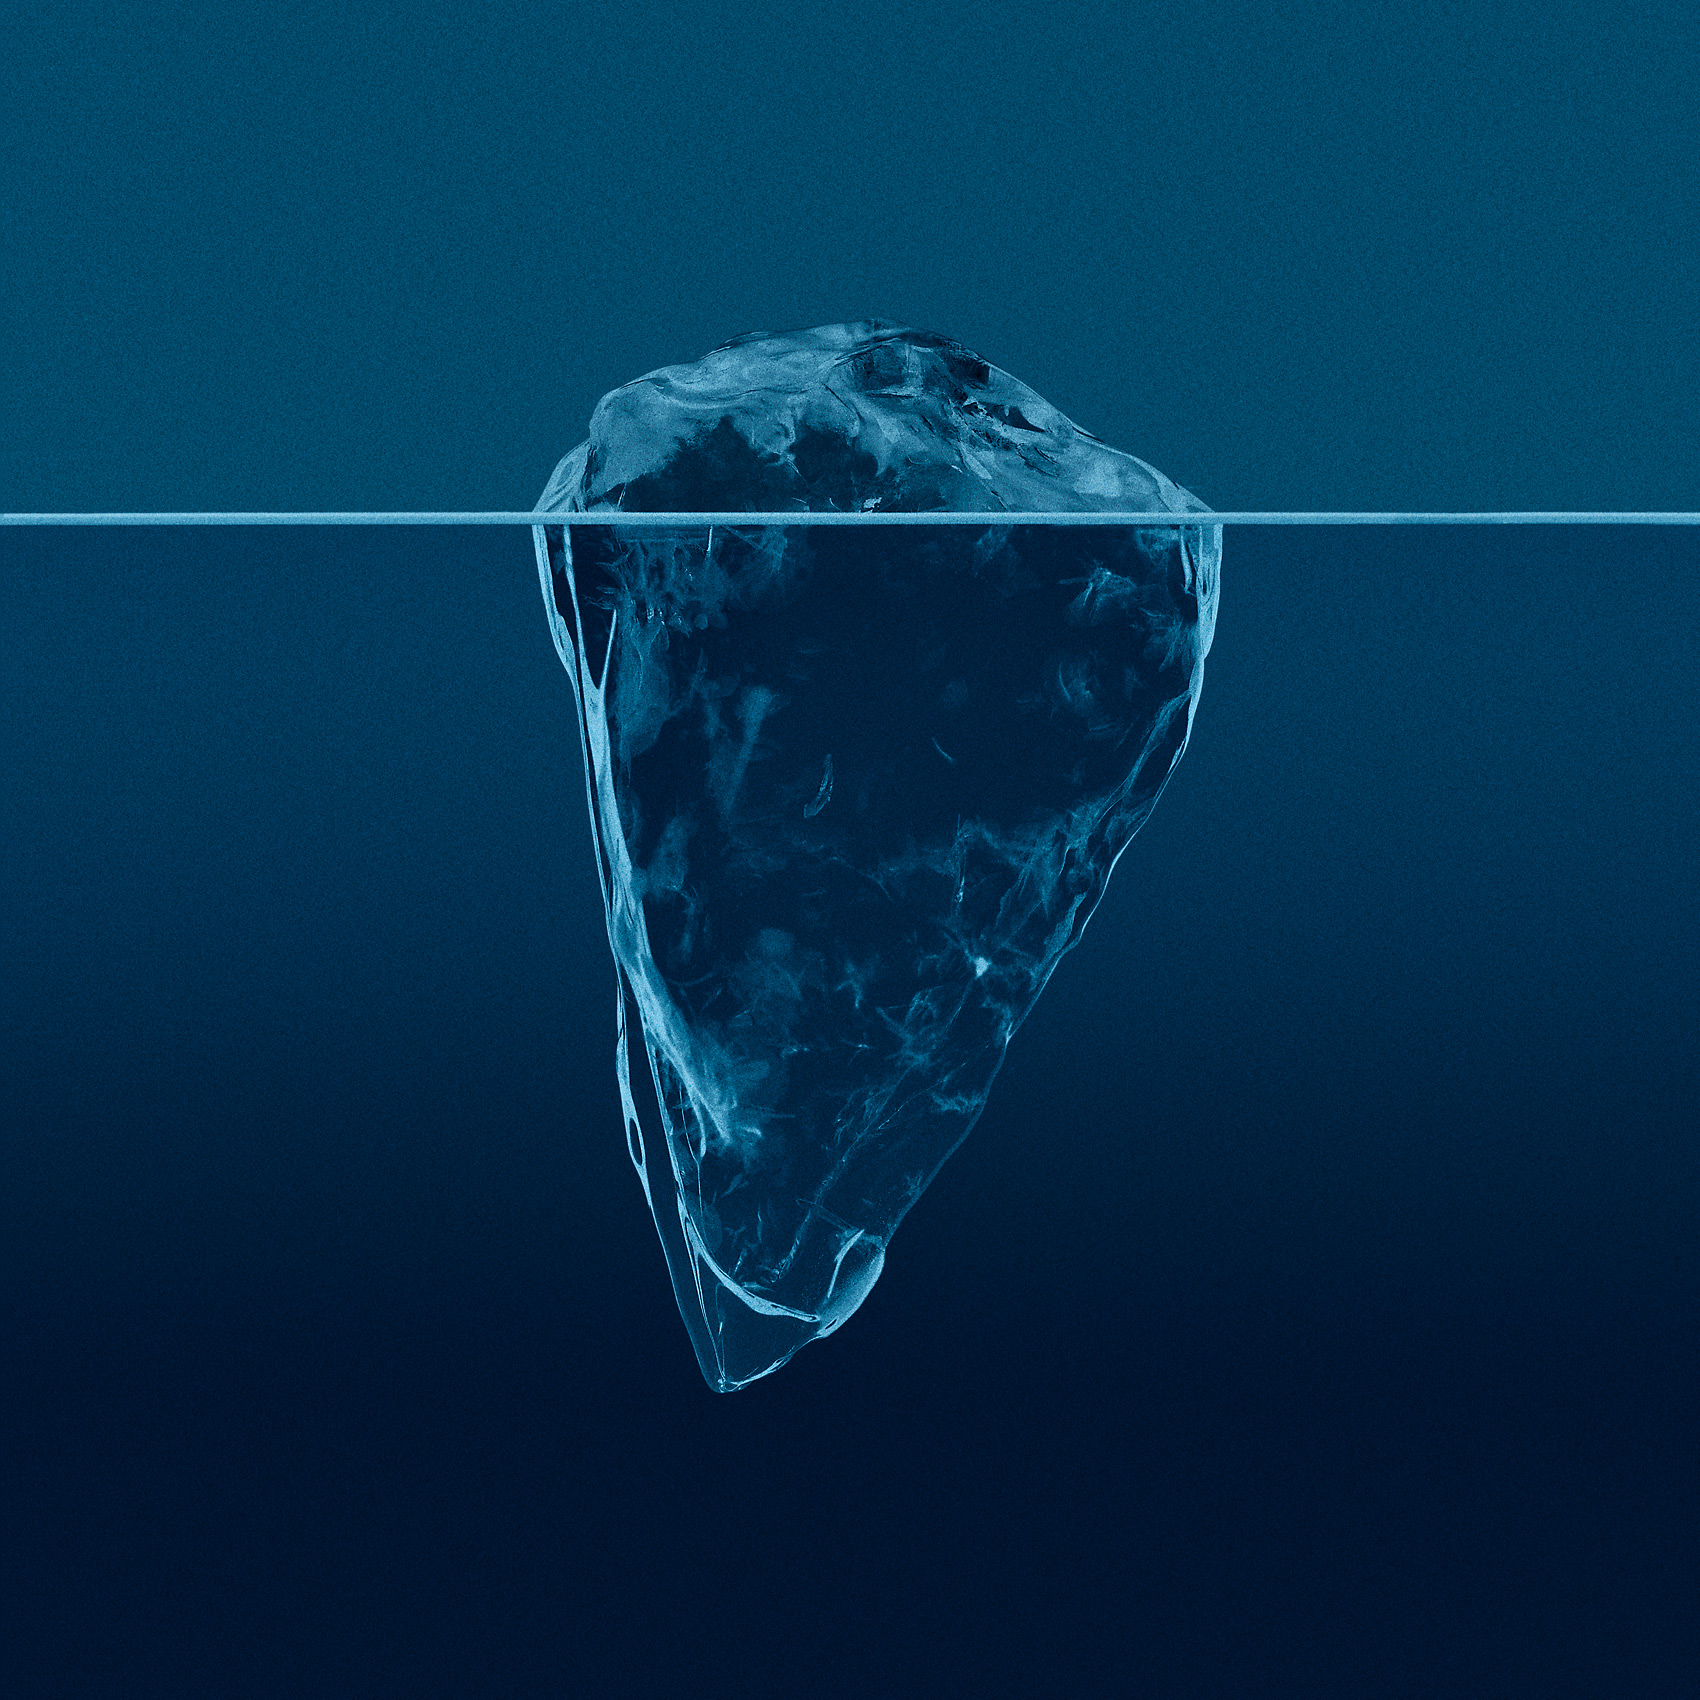 Nick_Rees-Abstract-Iceberg-5158